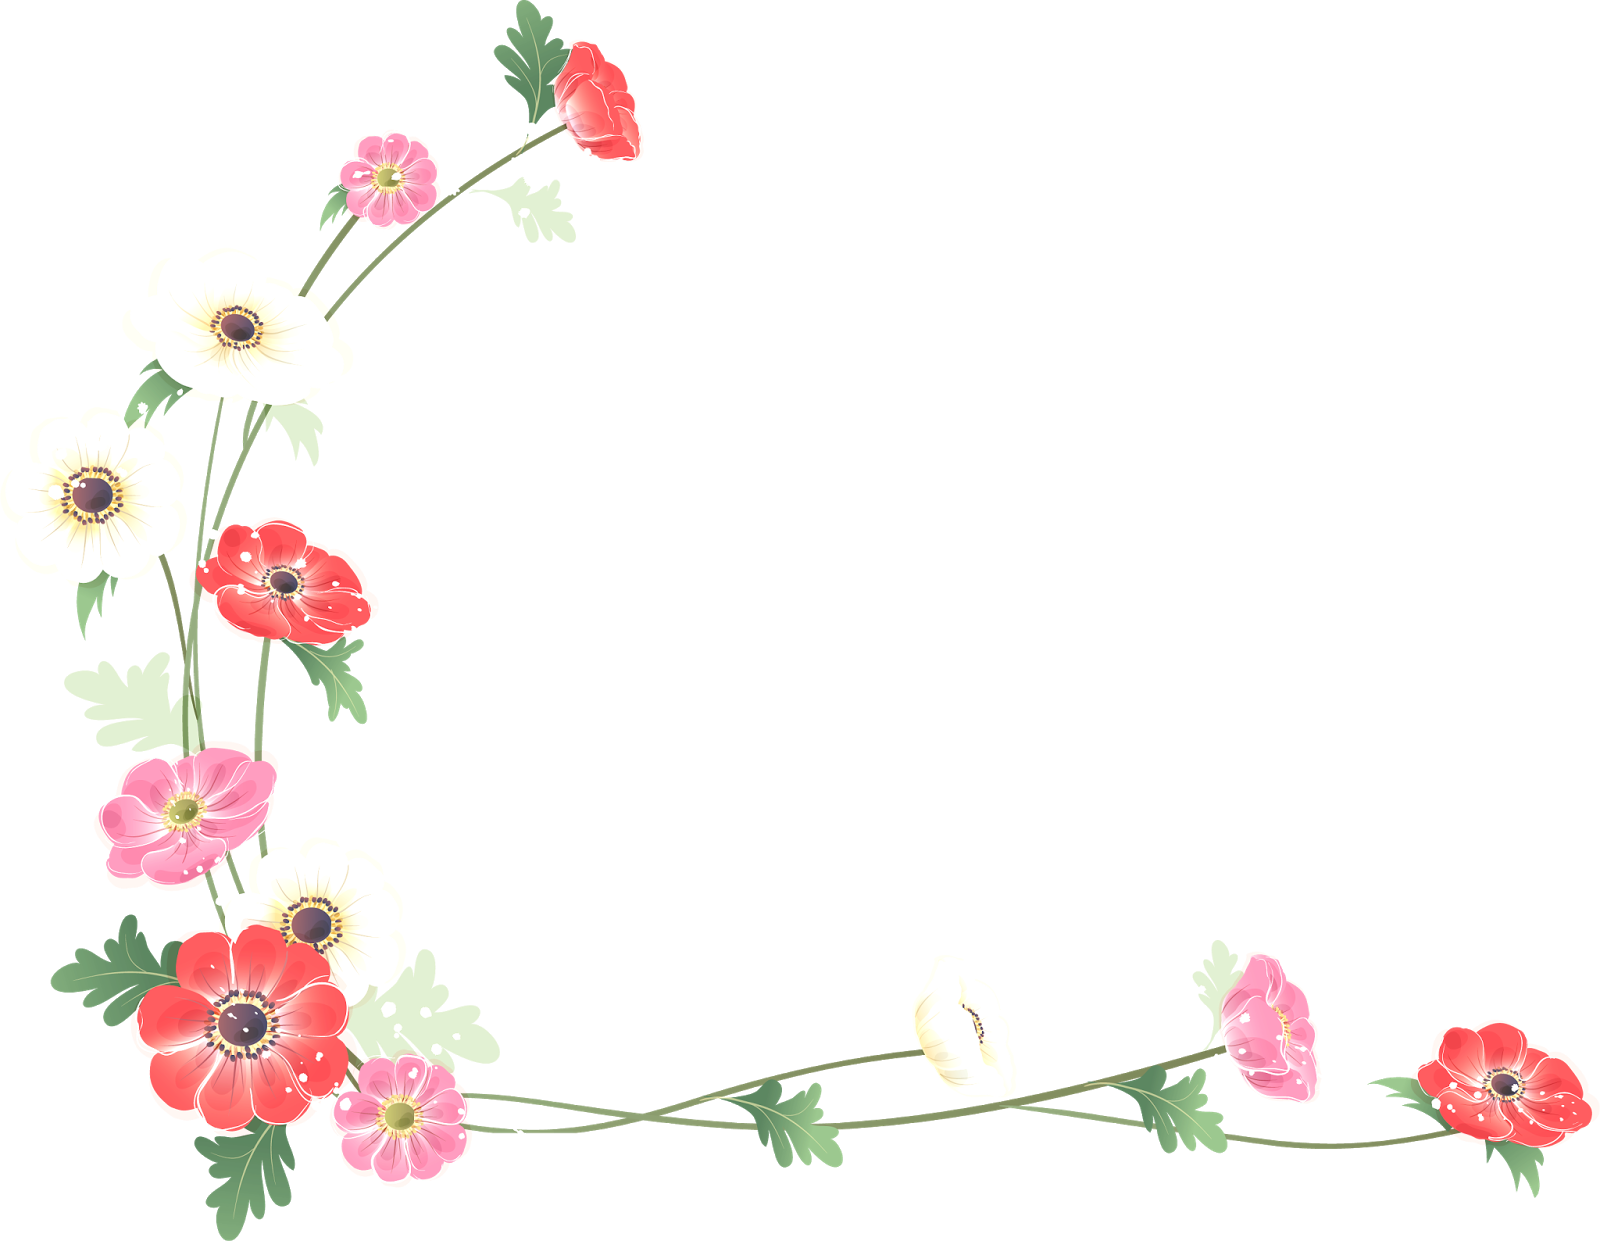 Flower borders free download picture library download Borders and Frames Flower Watercolor painting Clip art - flower ... picture library download